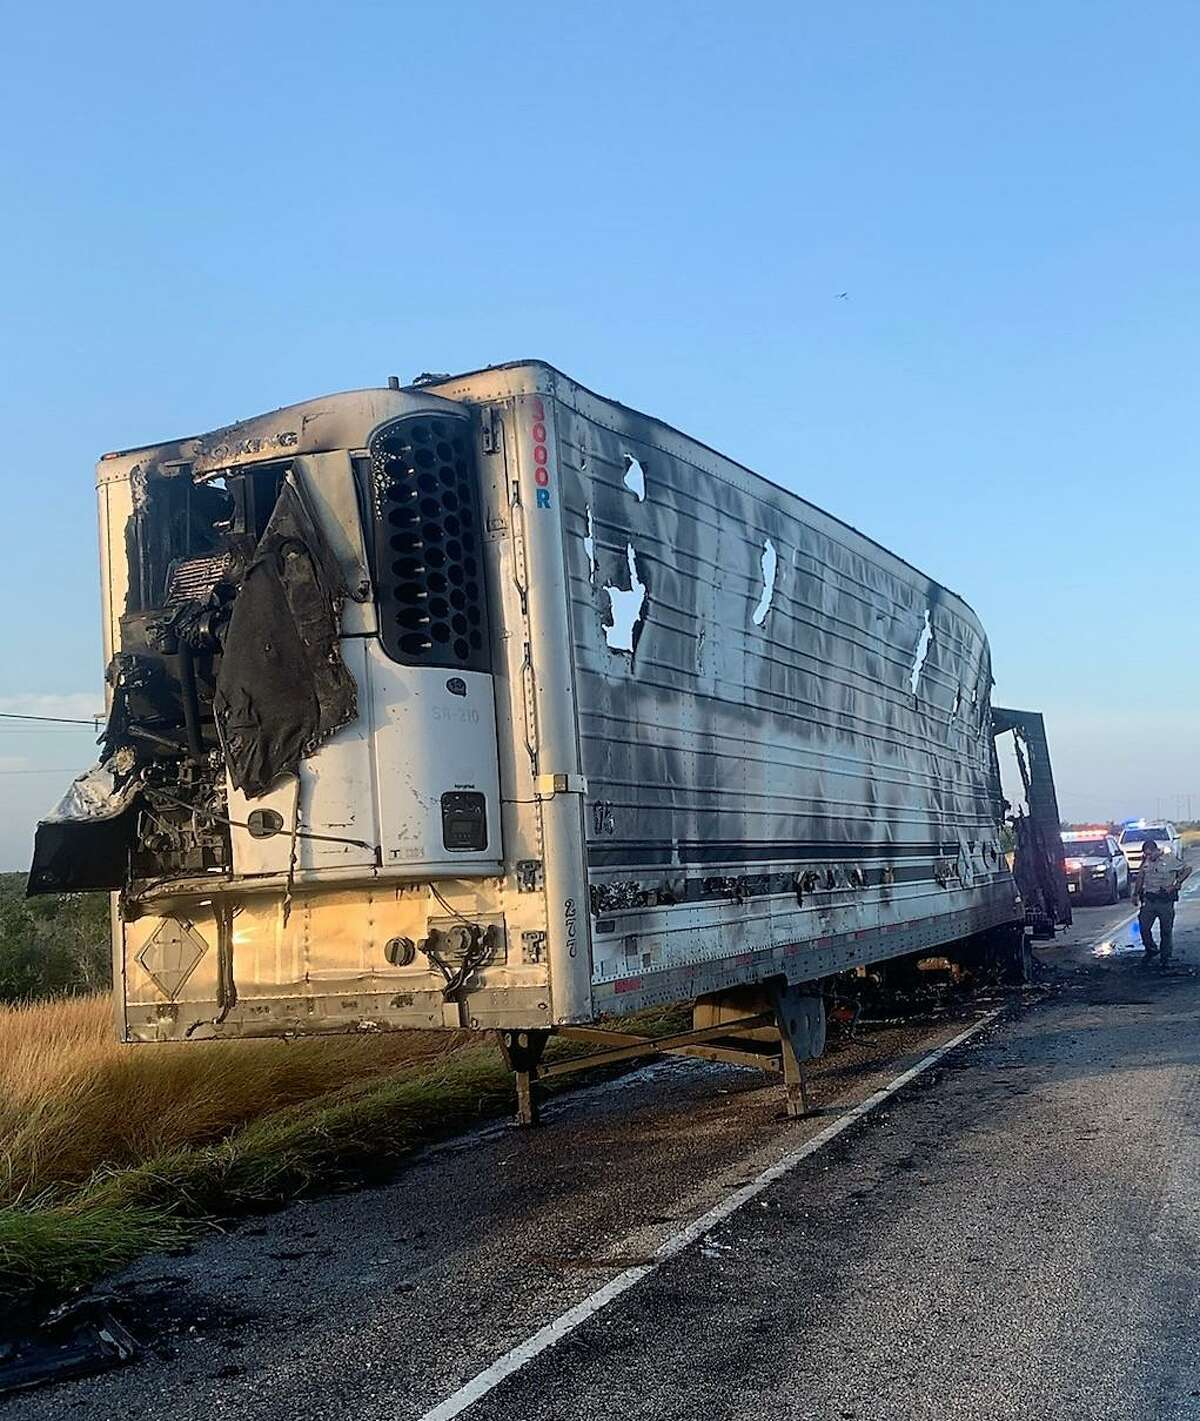 U.S. Border Patrol agents said 64 migrants were being transported in this trailer. It's not clear what caused the fire. Agents encountered the migrants after canvassing the surrounding area.